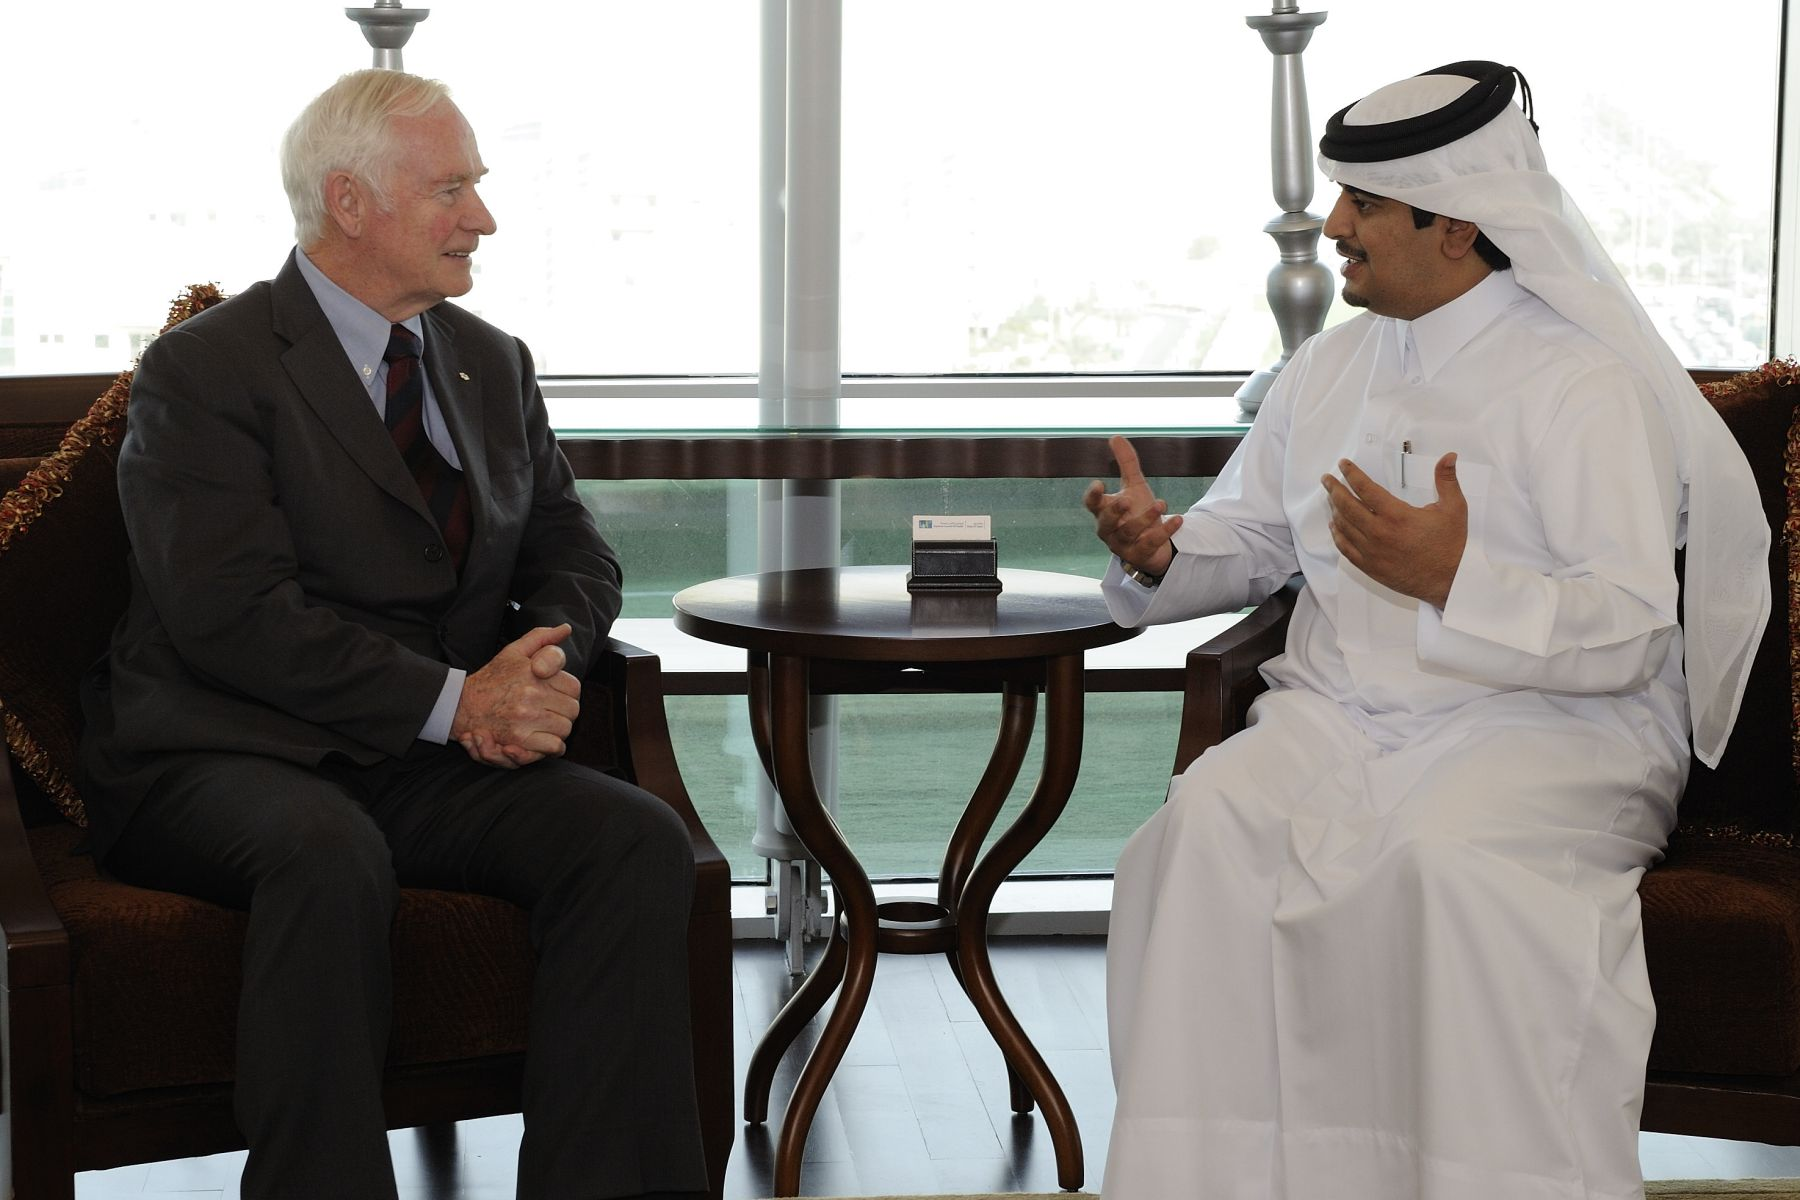 The Governor General met with His Excellency Abdulla bin Khalid Al-Khatani, Qatar's Minister of Health and Secretary General of the Supreme Council of Health. They shared thoughts on common values in both health care and education.